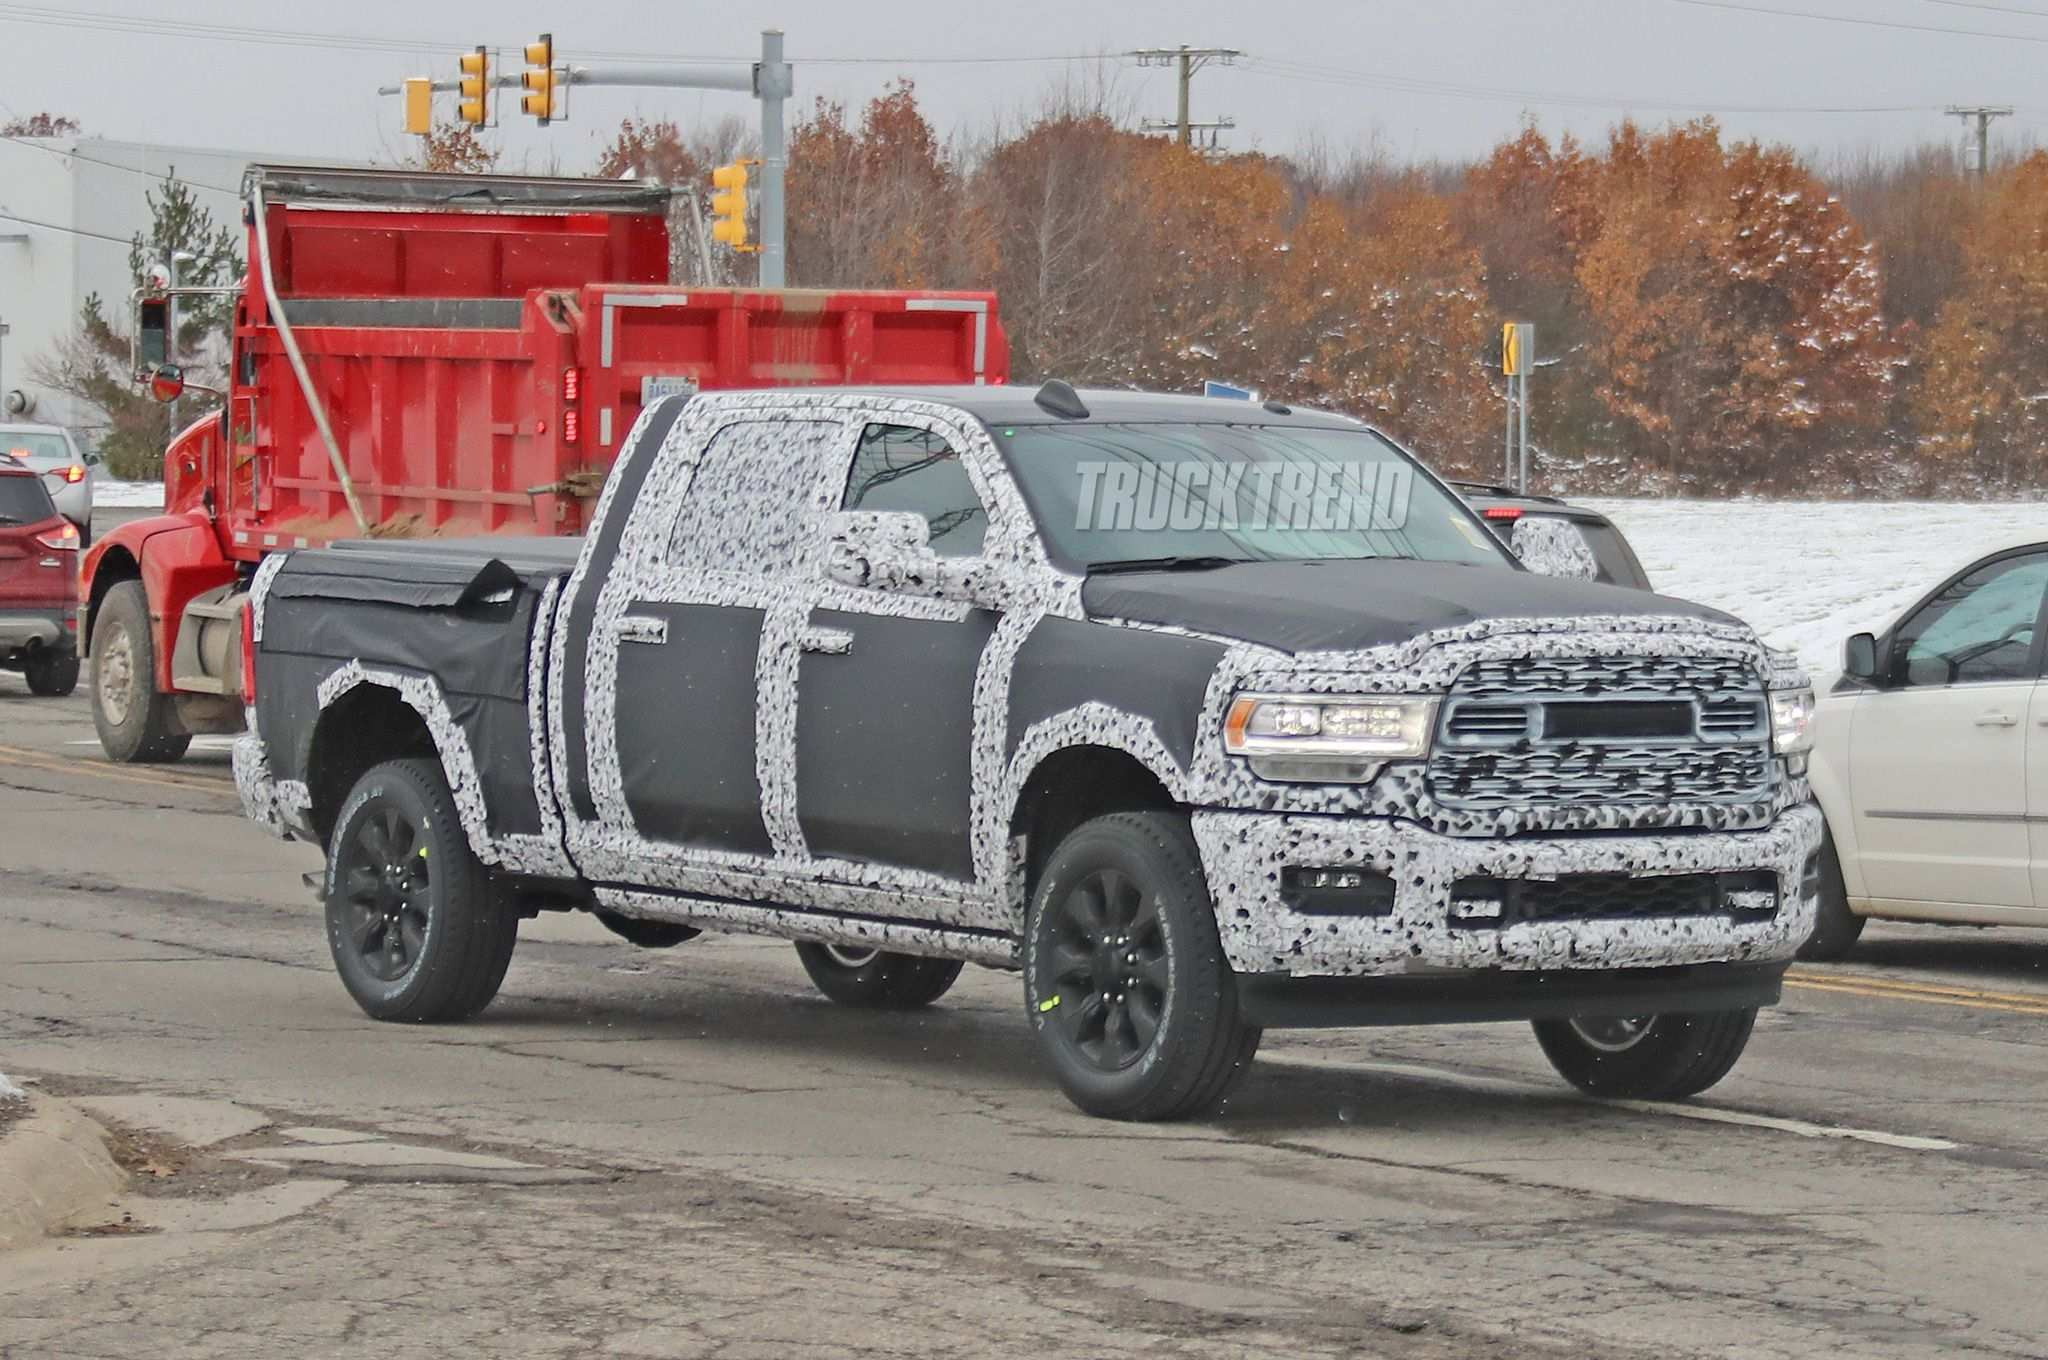 38 New 2020 Ram 3500 Price And Release Date